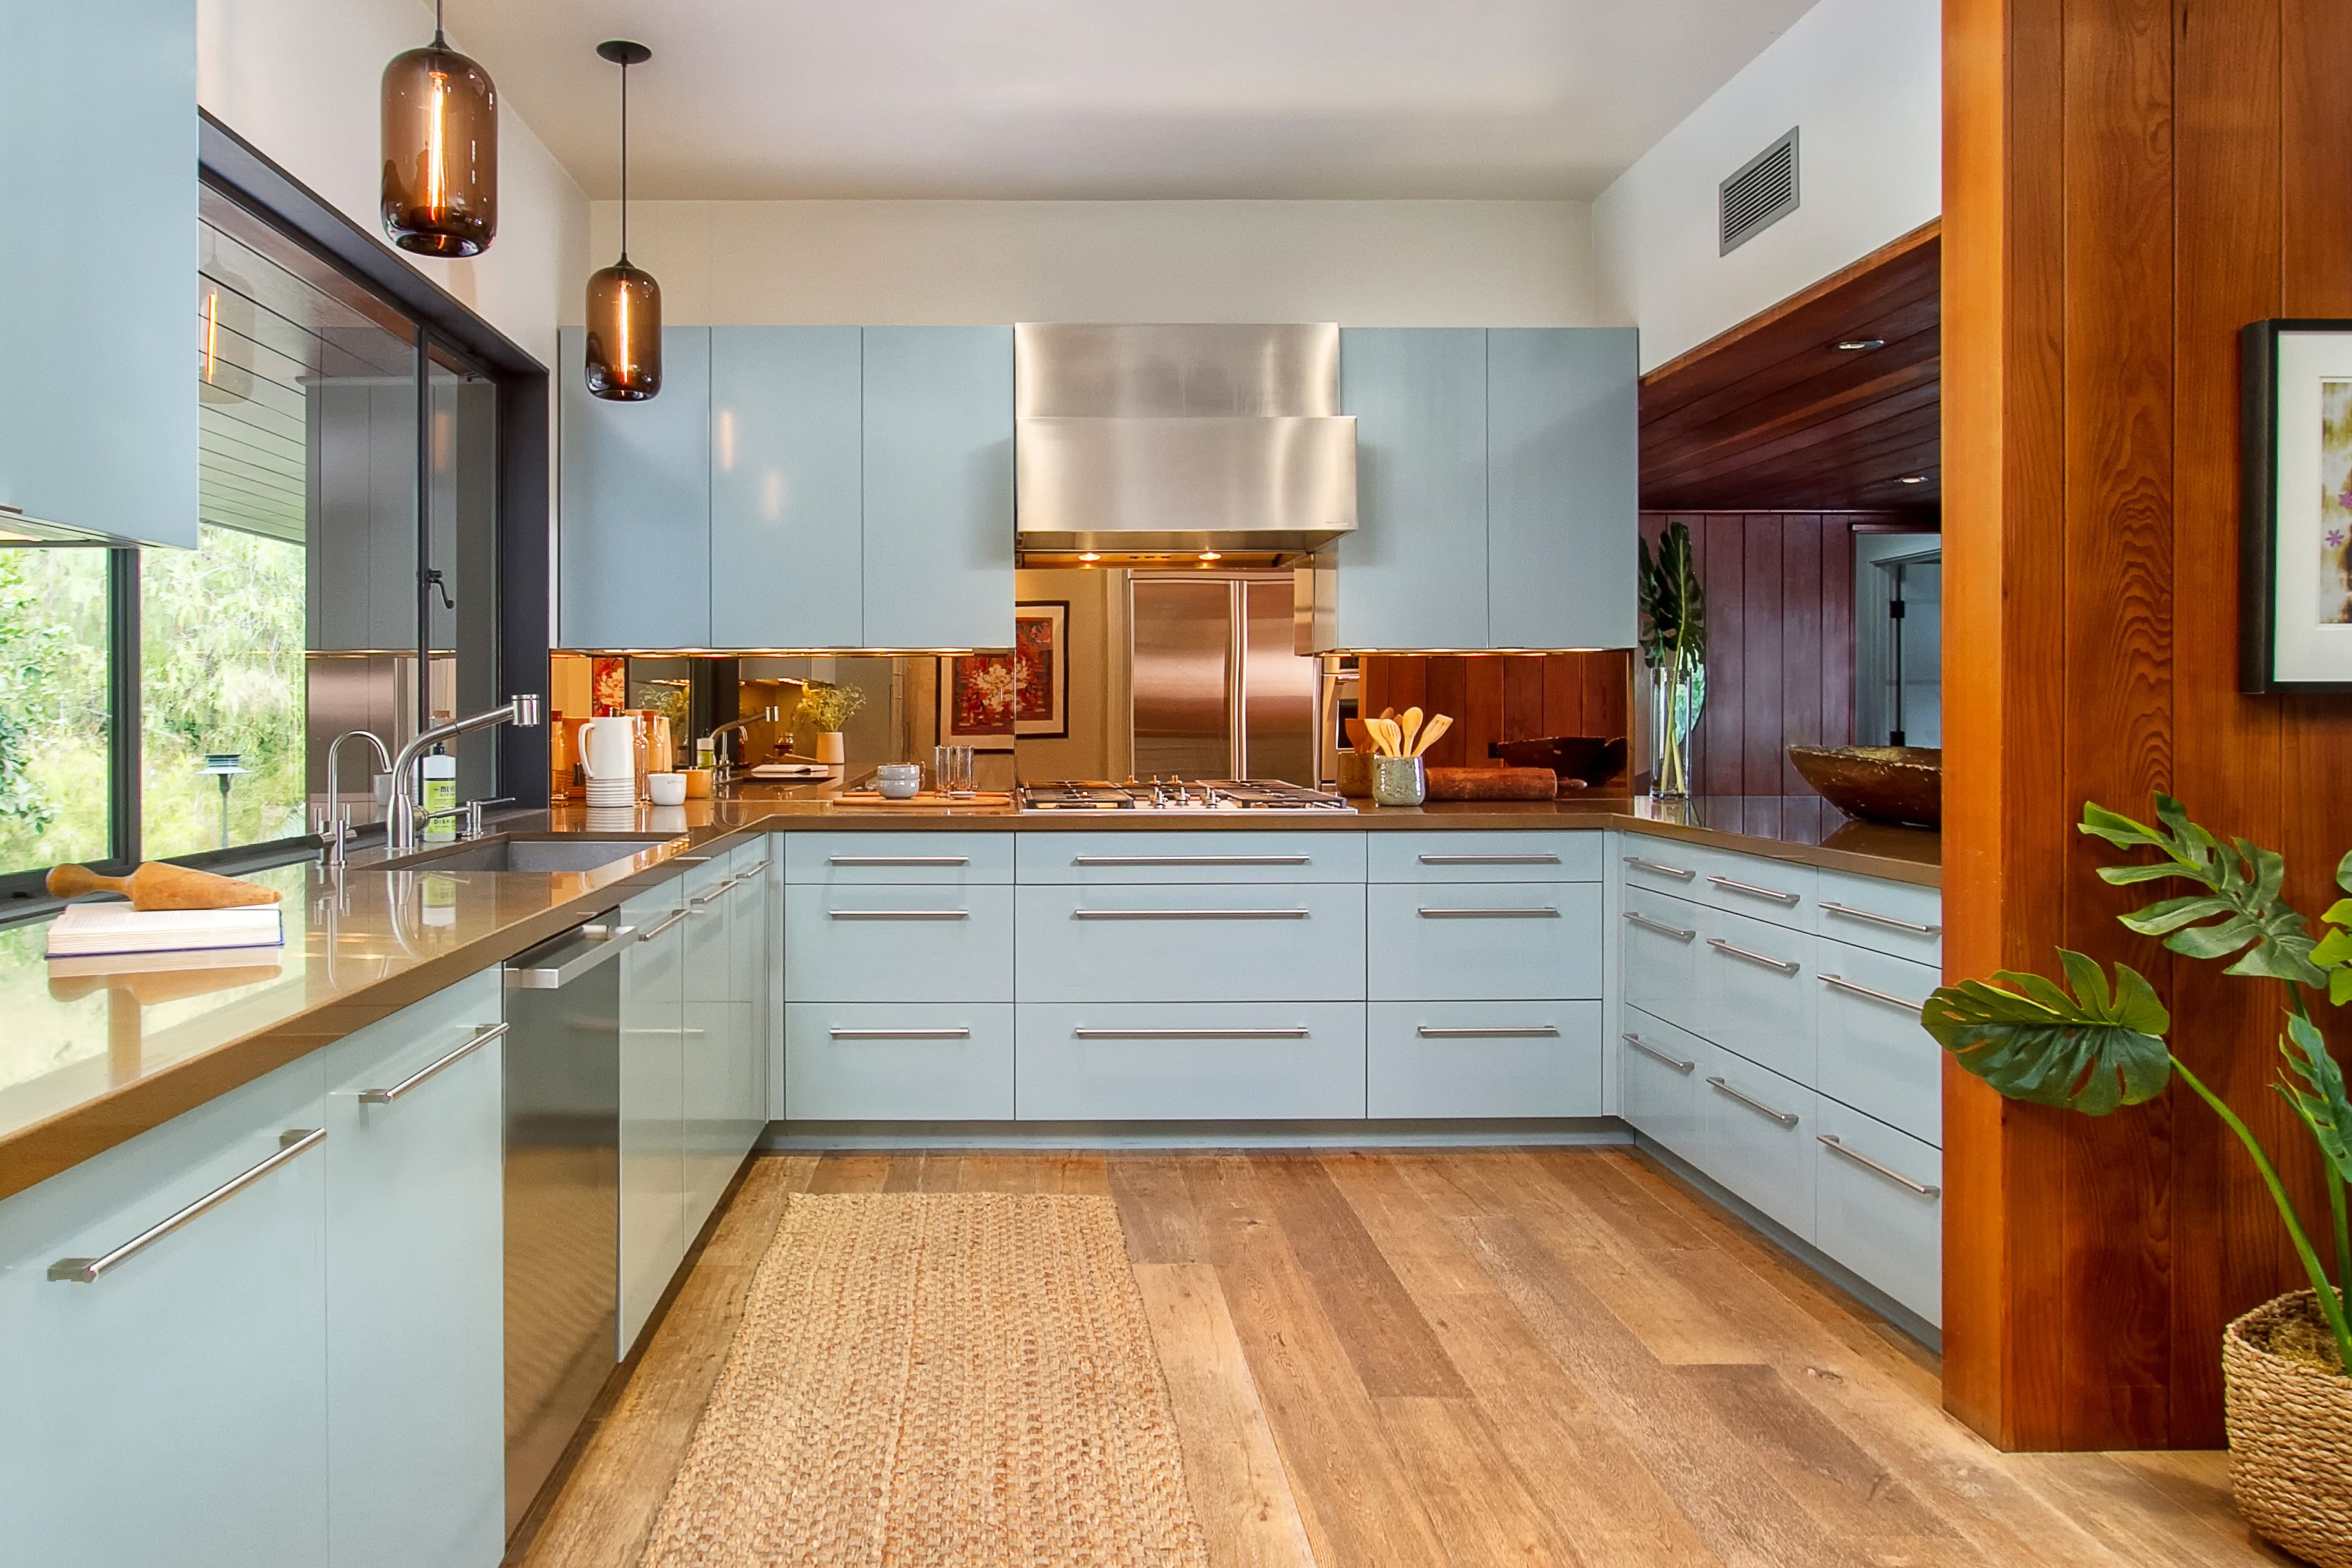 Pin by Susan Pickering Photography on Interior Photography